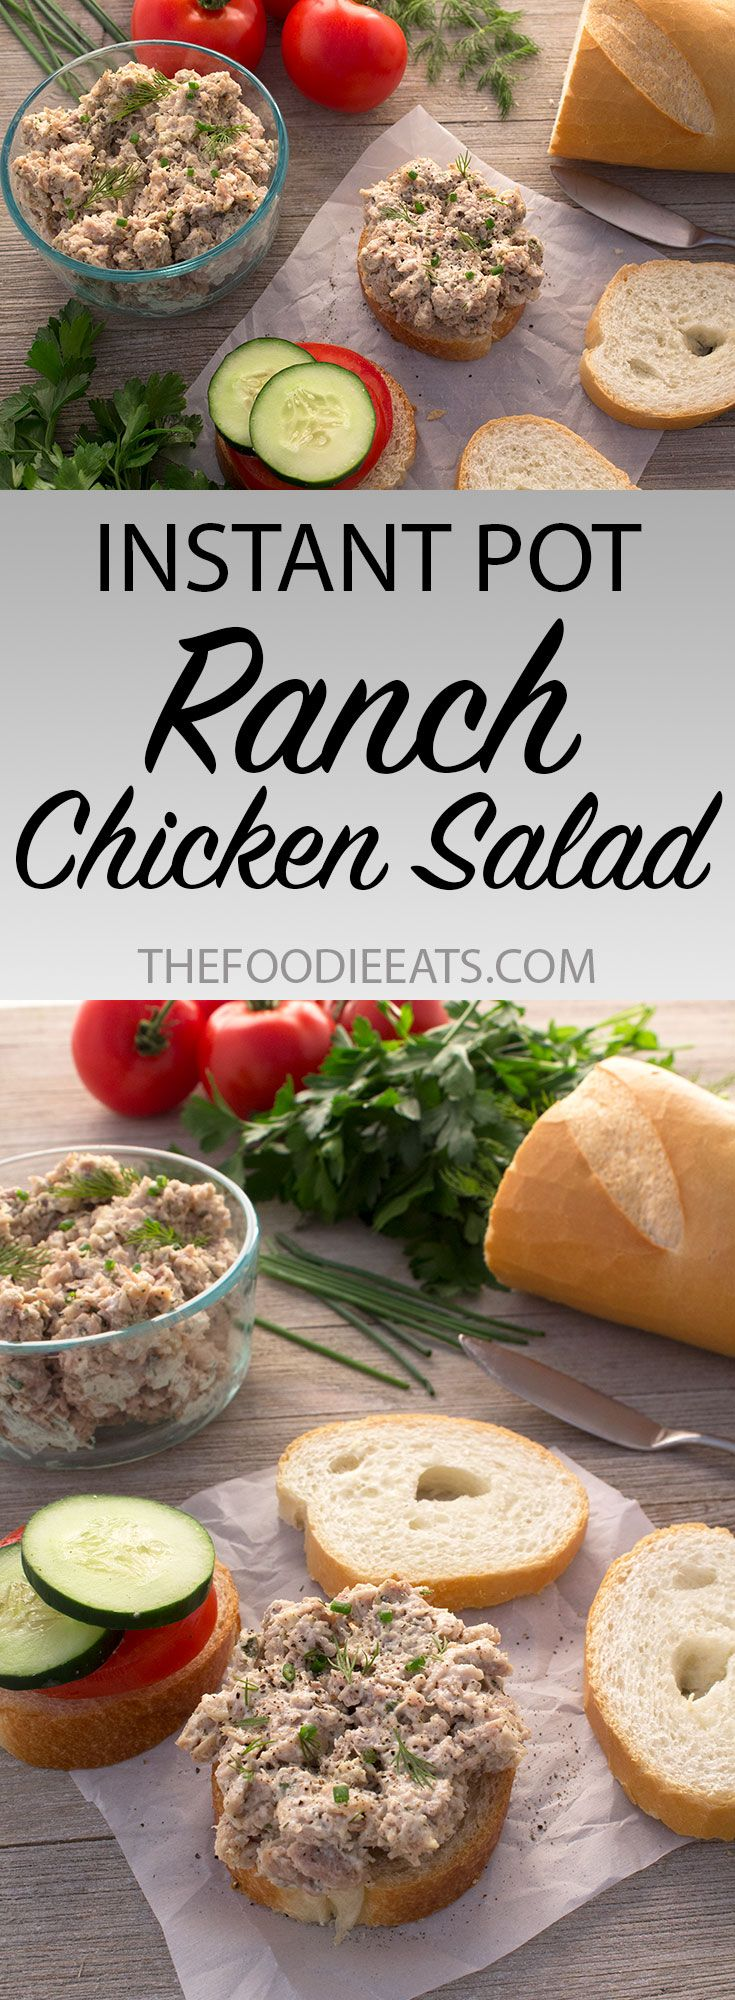 Pressure Cooker / Instant Pot Ranch Chicken Salad via The Foodie Eats